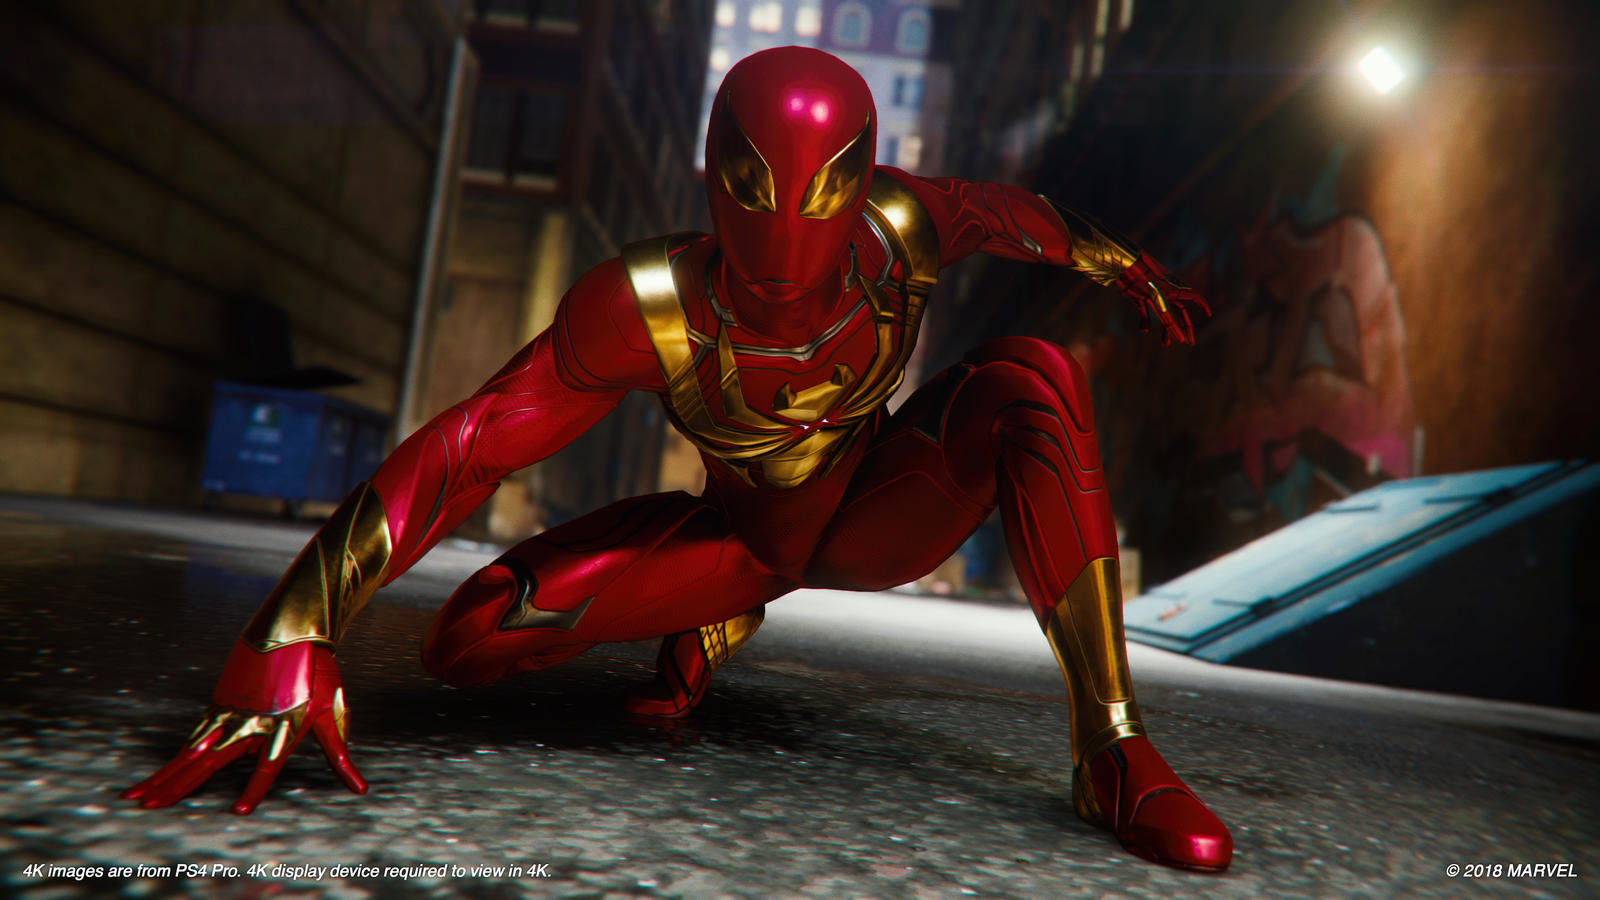 Download The 'Marvel's Spider-Man: Turf Wars' DLC Chapter